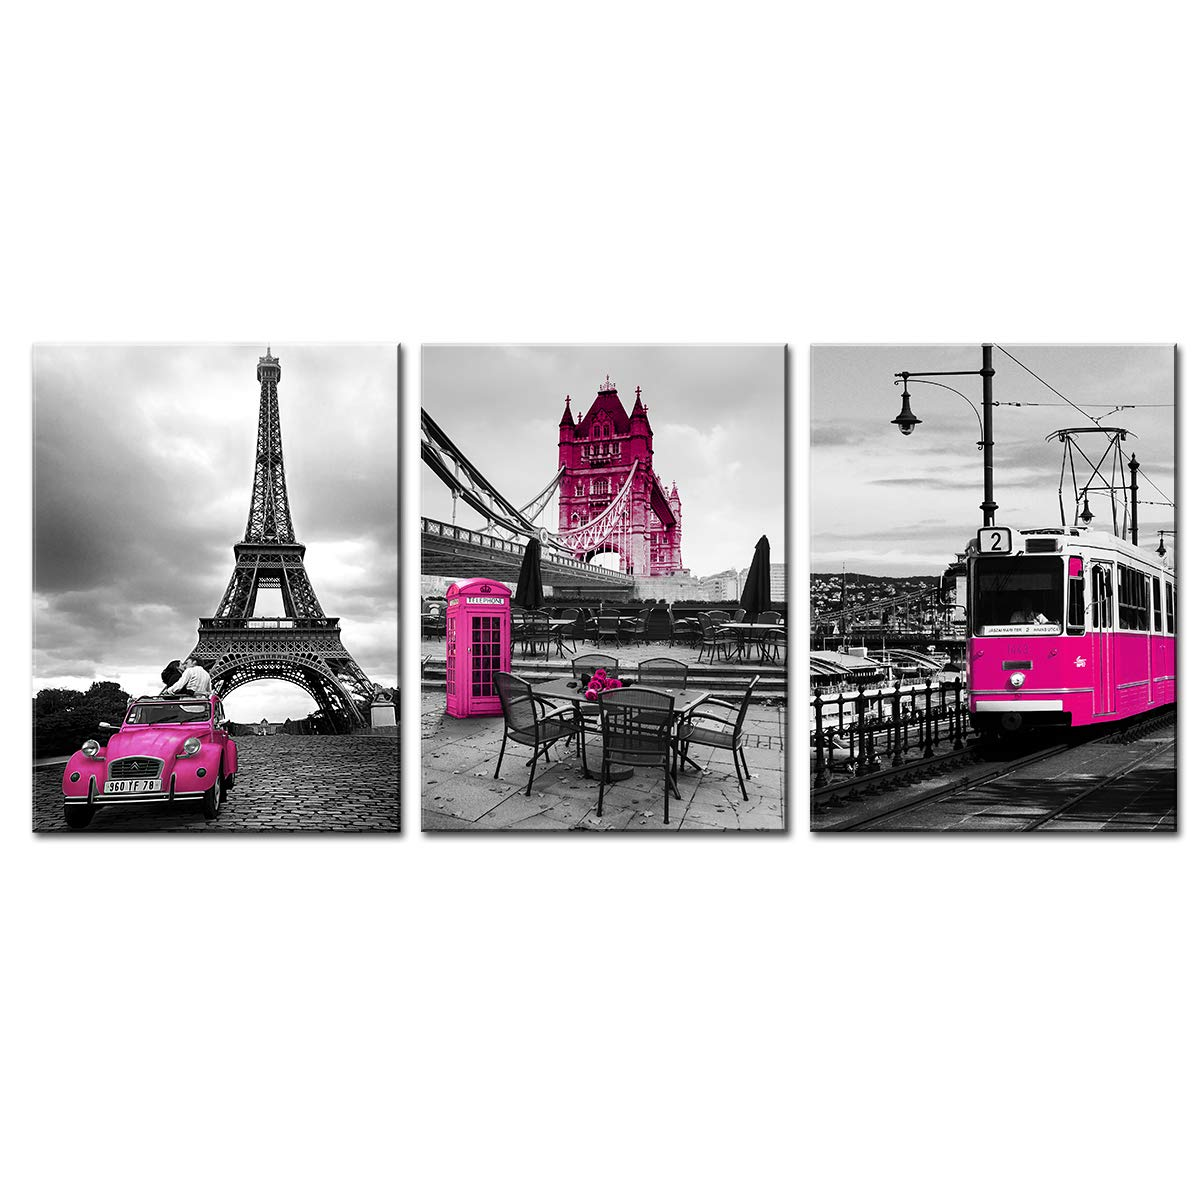 sunfrower Dark Pink Car Canvas Home Decor Print Wall Art for Living Room Rosy Paris Building London Bridge Tram Falling in Love Painting Picture Framed Decoration 12 × 16inches x 3 Sets